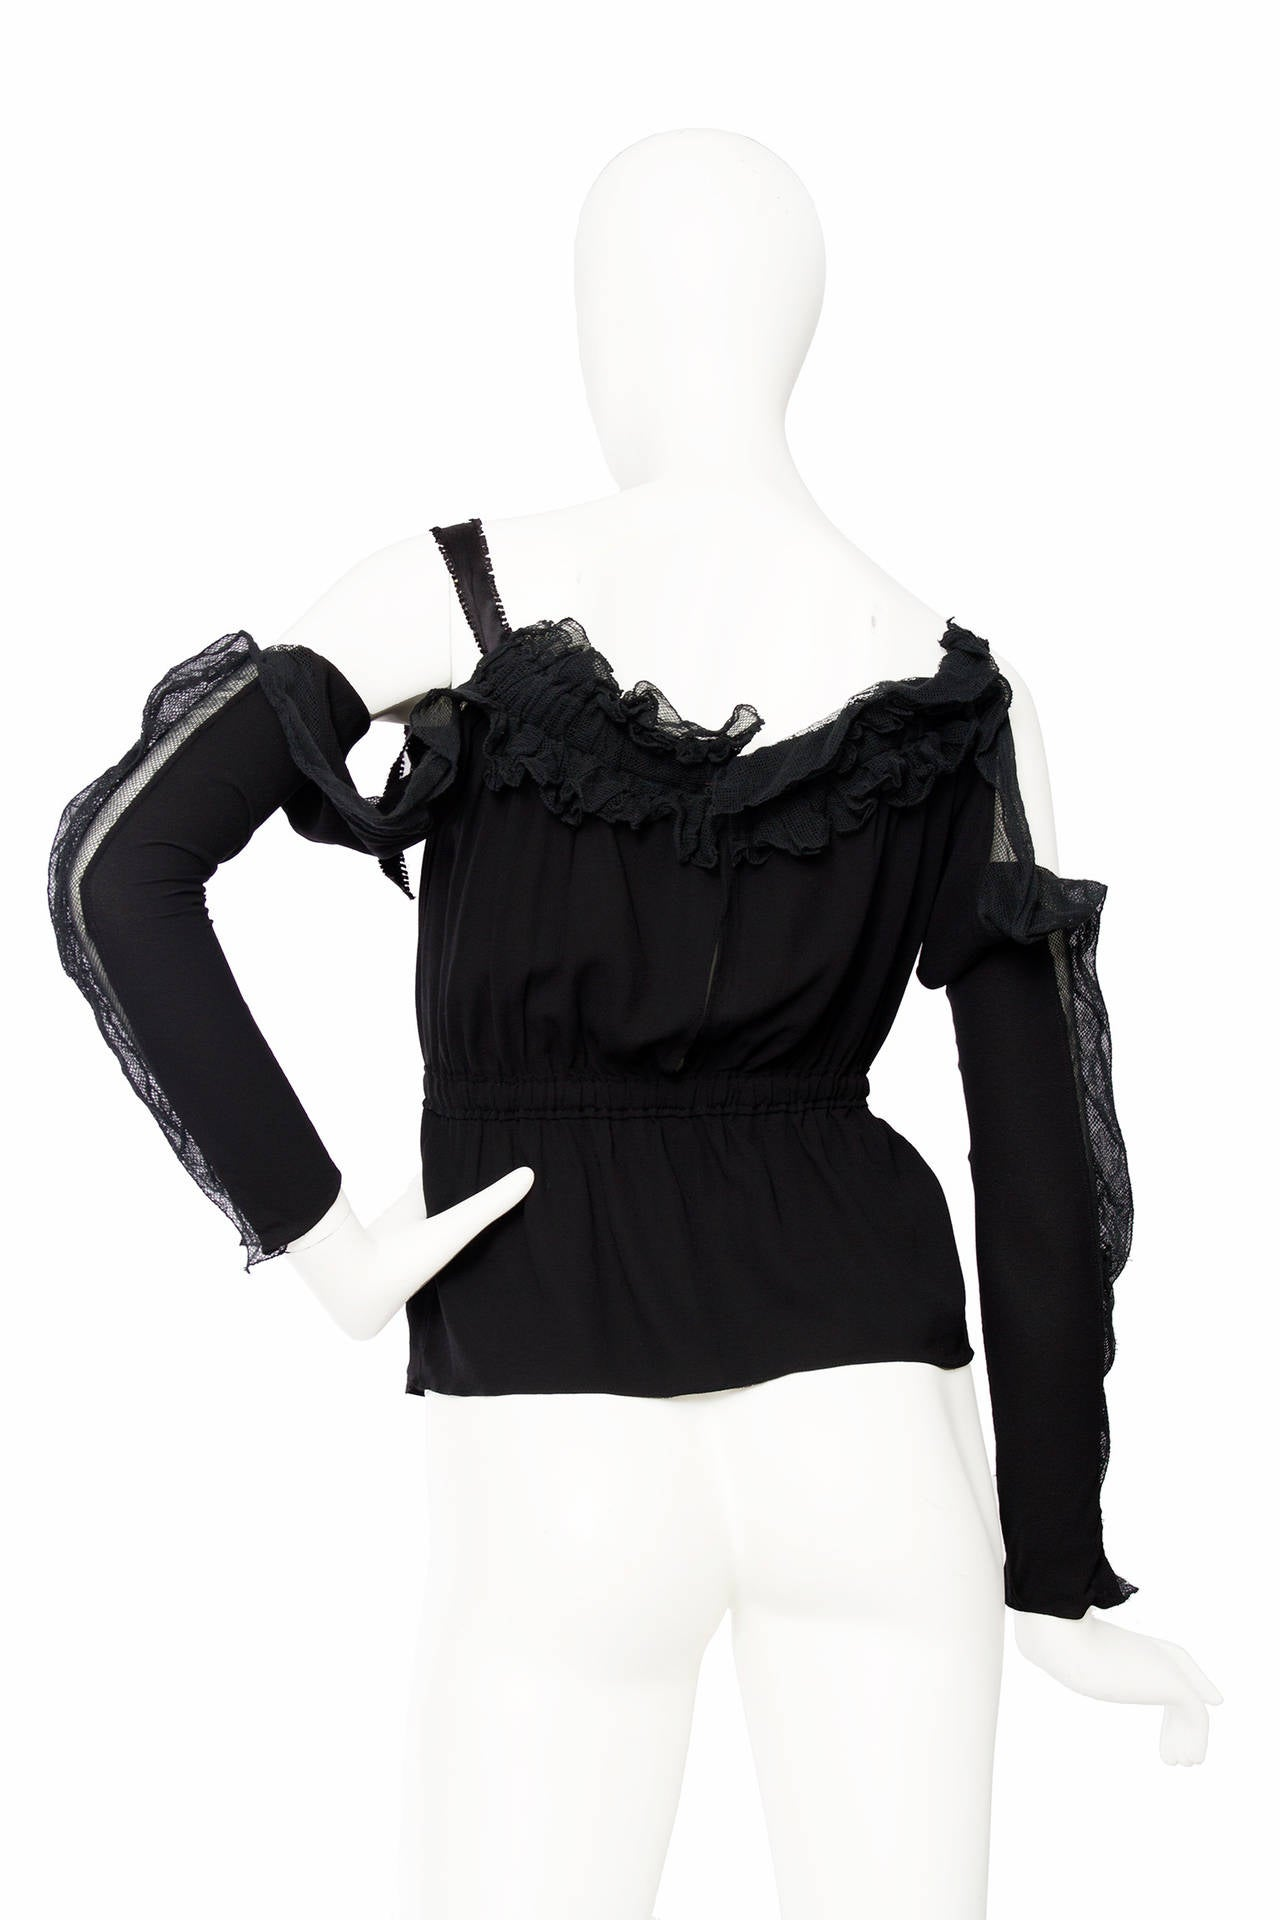 1990s Yves Saint Laurent Tom Ford Black Silk & Lace Blouse In Good Condition For Sale In Copenhagen, DK